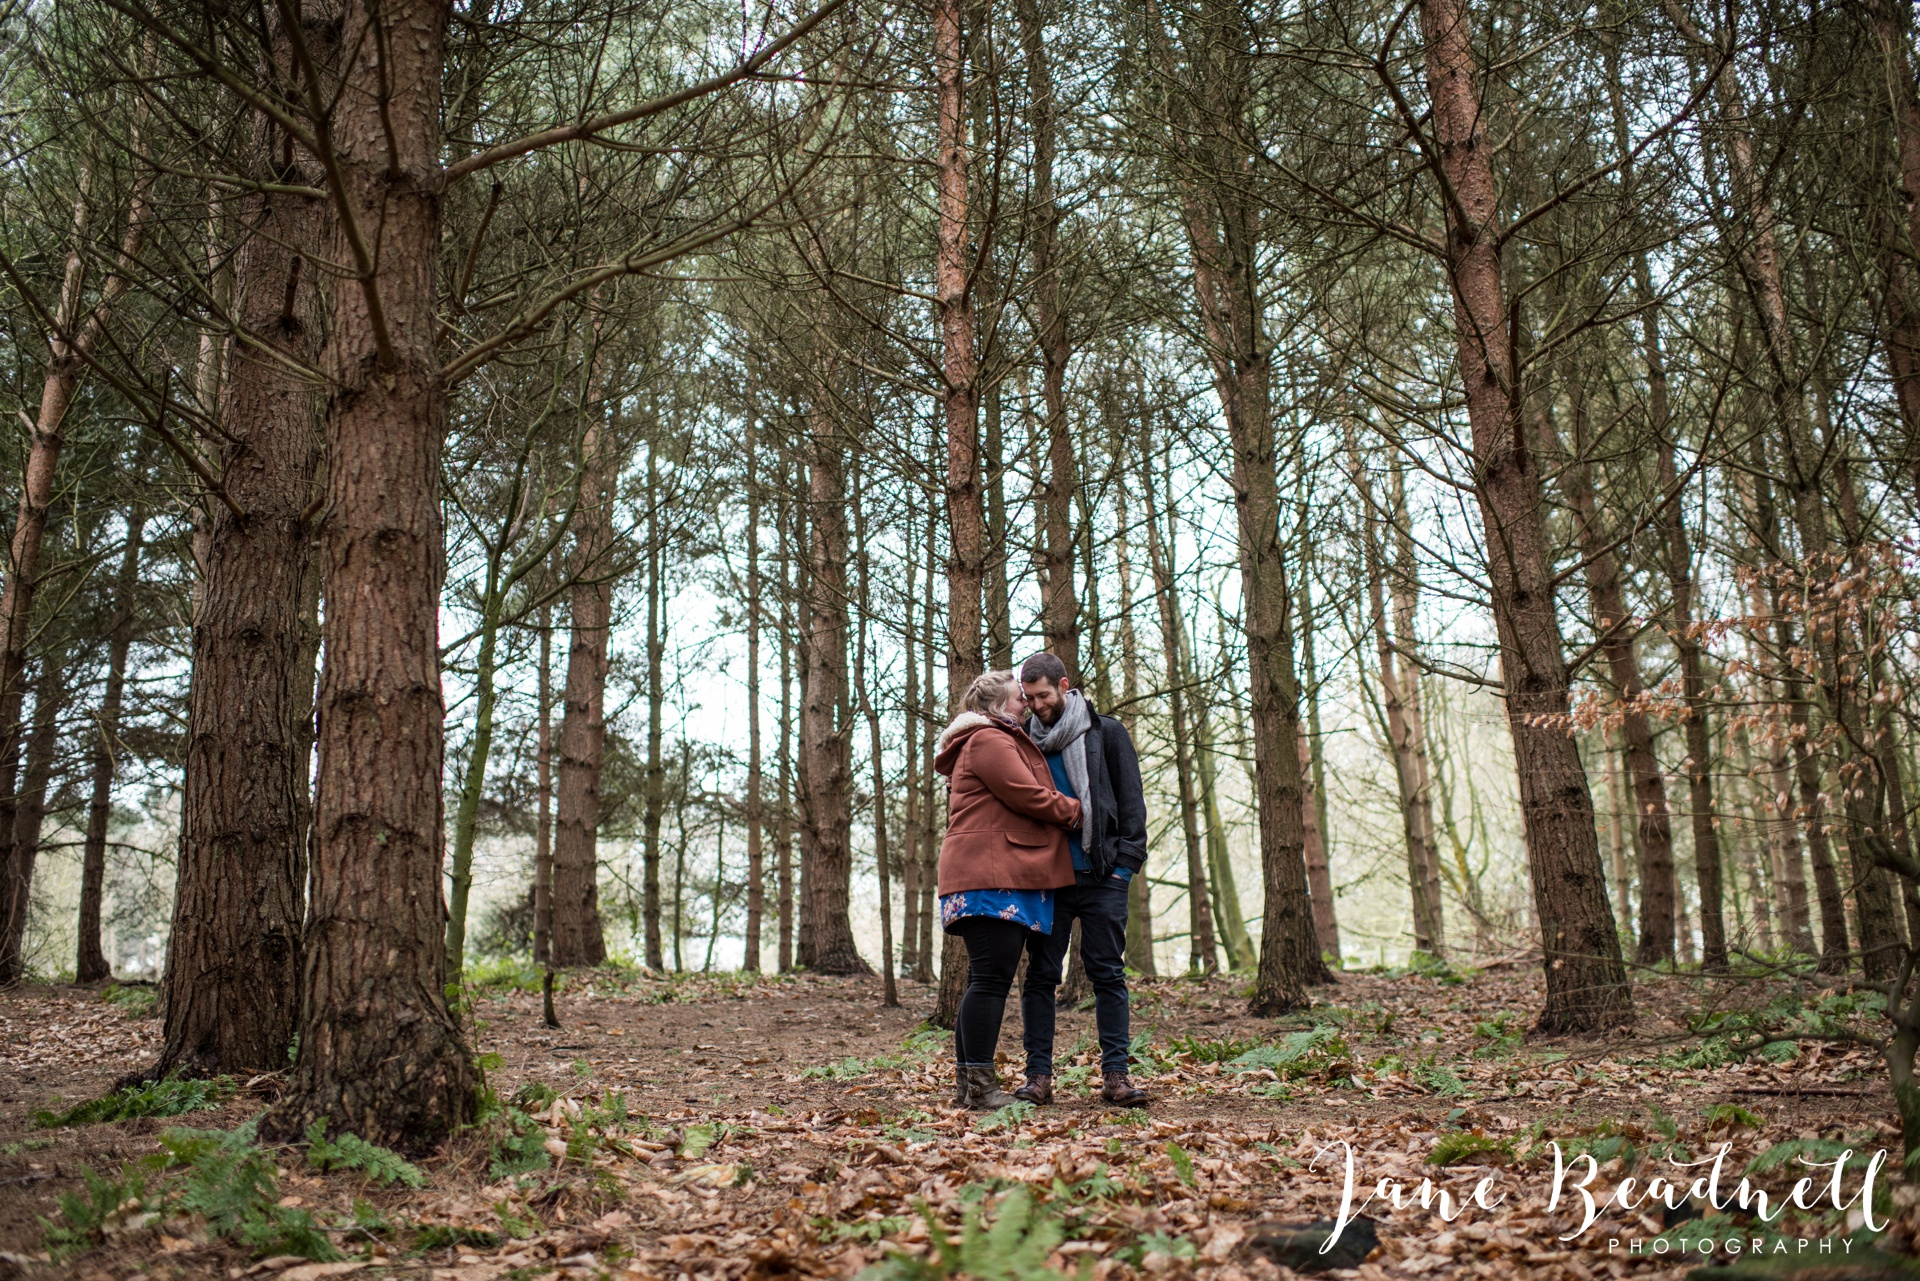 engagement photography Chevin jane beadnell wedding photographer Otley_0013